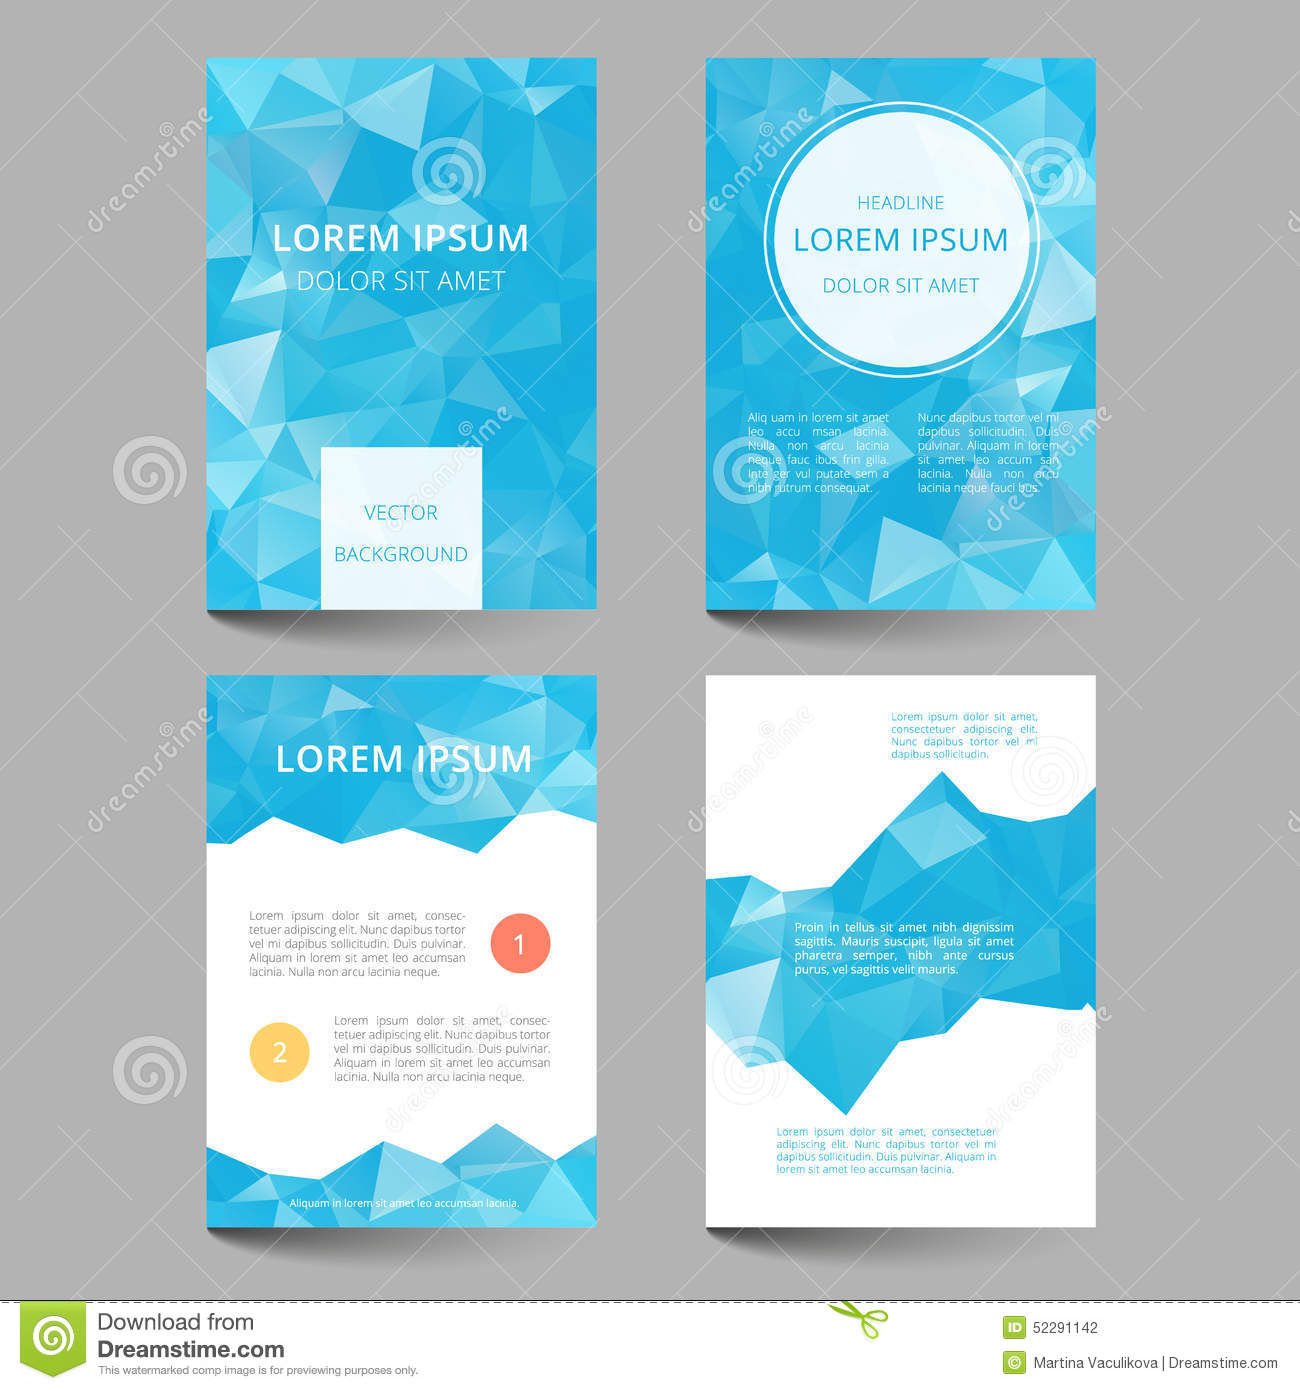 Document Template Low Poly Design Stock Vector - Illustration of ...